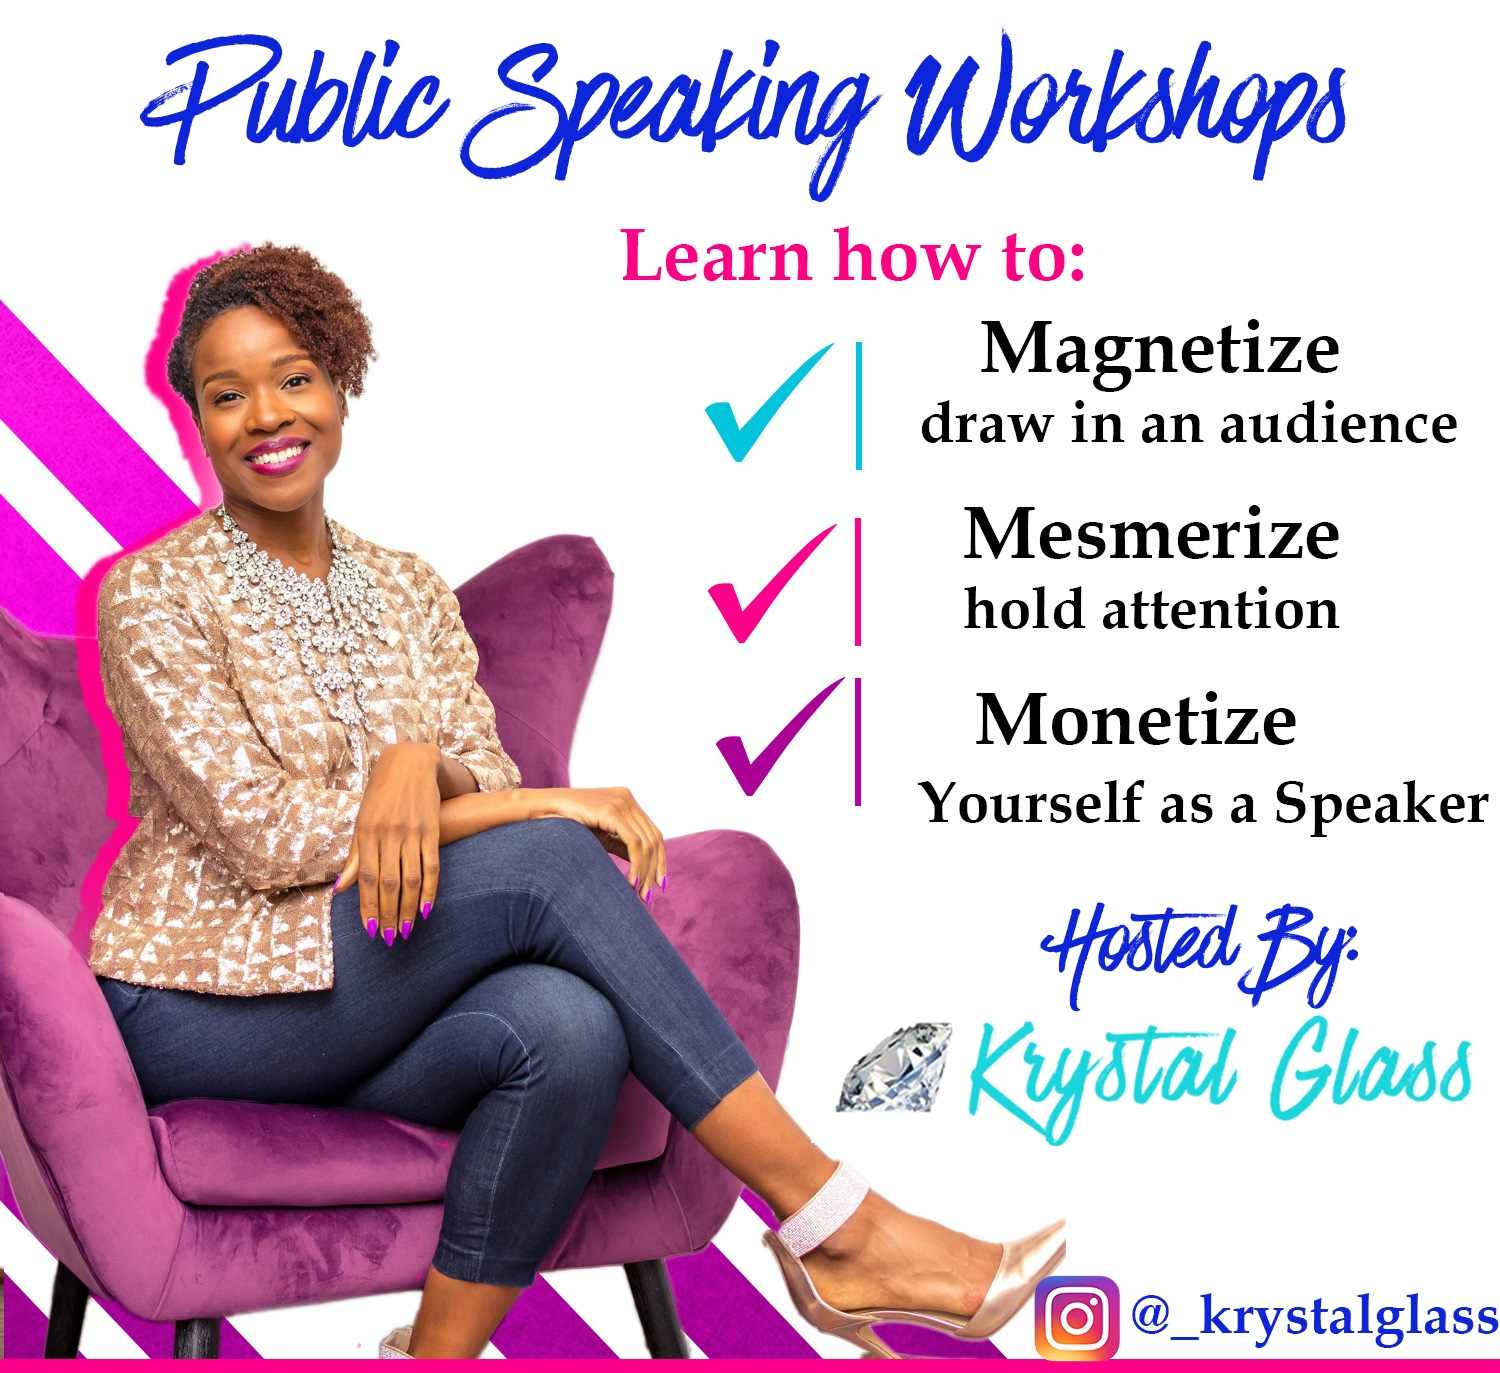 Public Speaking flyer.jpg